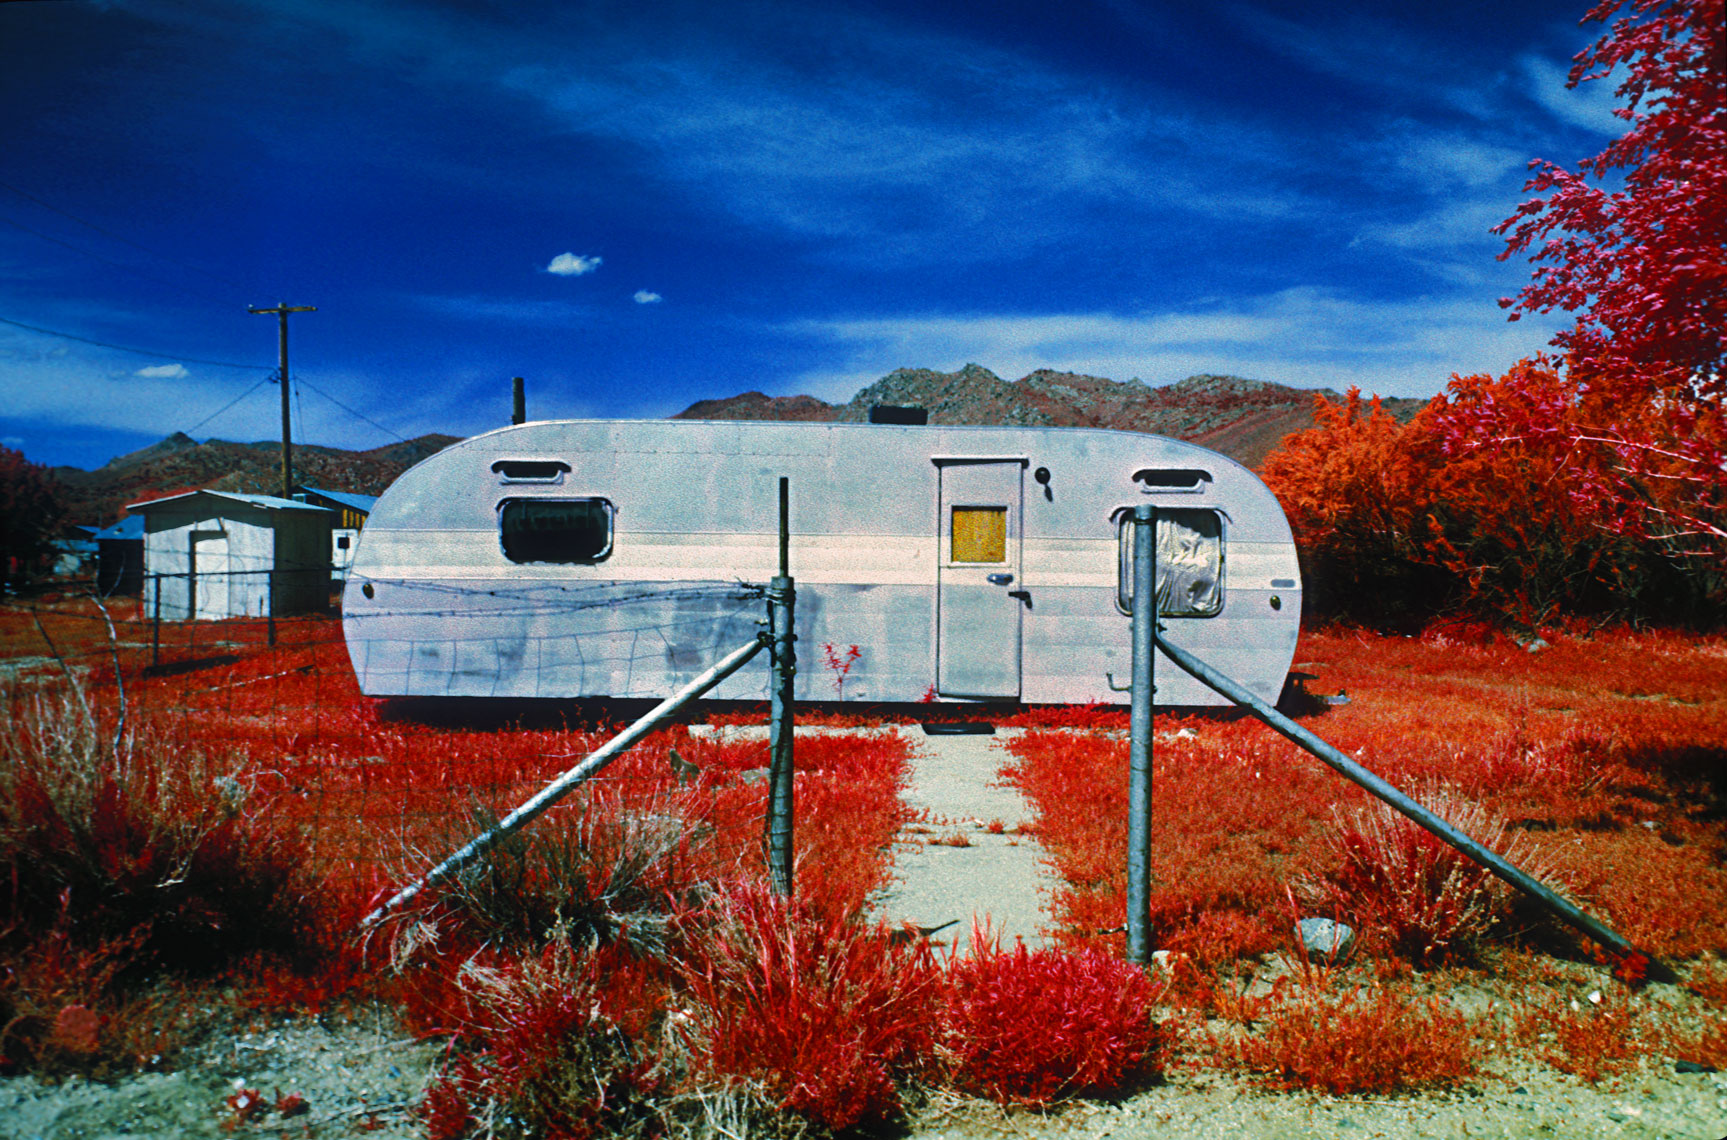 05_Infrared-Mobile-Home